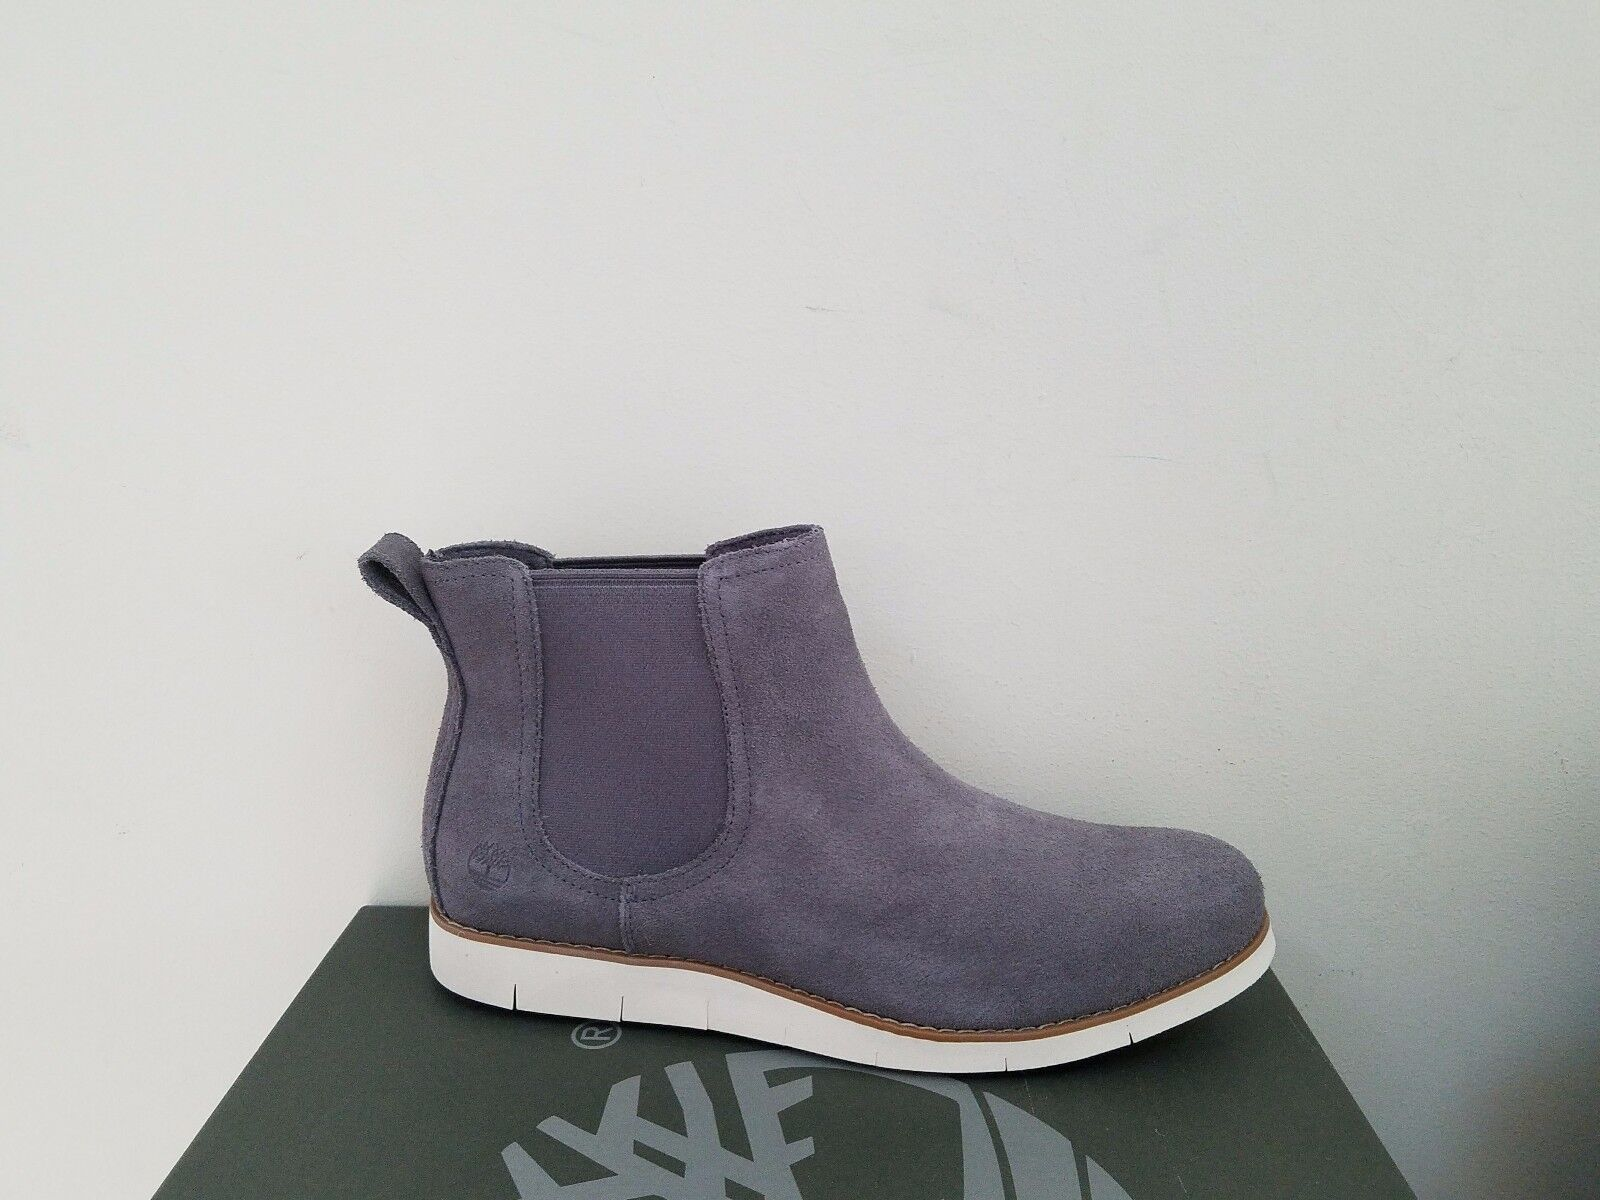 Timberland Women's Lakeville Double Gore Chelsea  Boots NIB